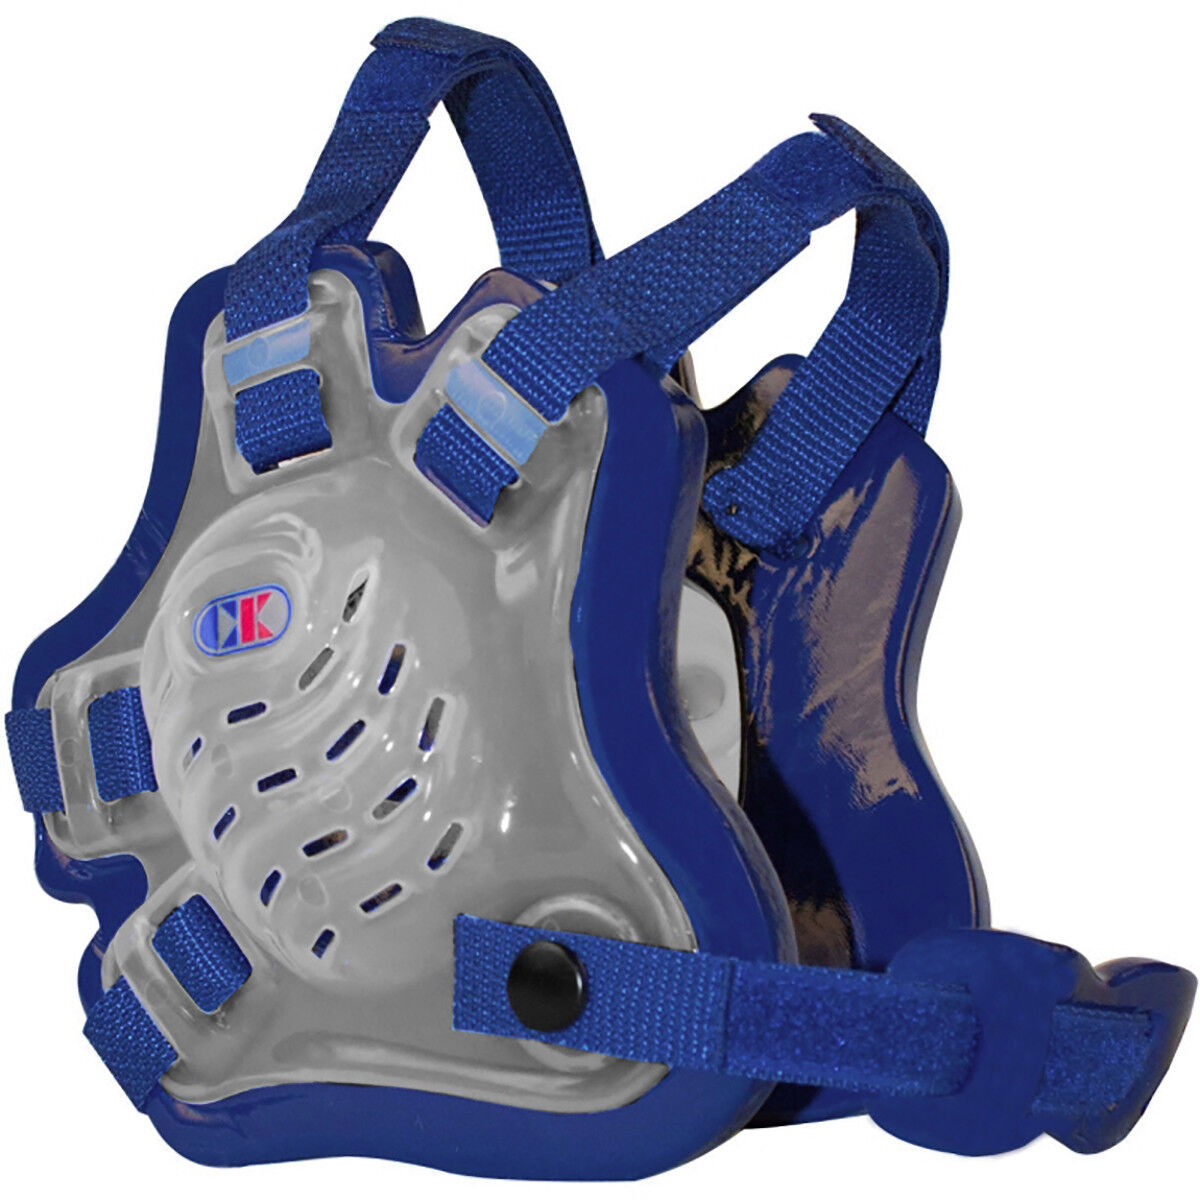 Cliff Keen F5 Tornado Wrestling Headgear - Translucent Royal blueee Royal blueee